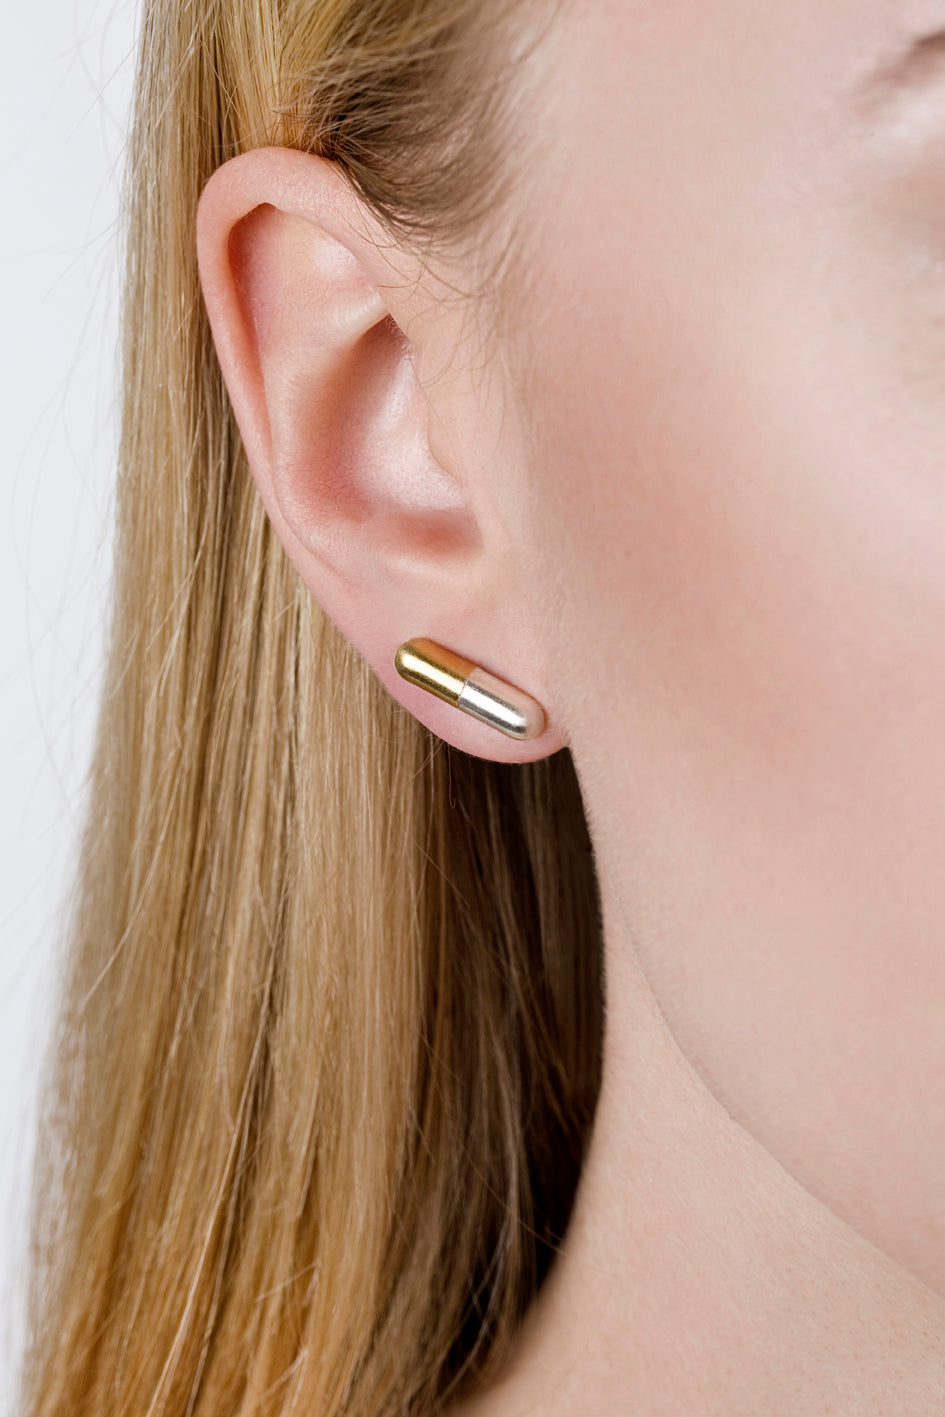 Undlien Design Medicus Capsula Earrings - Norwegian Jewelry